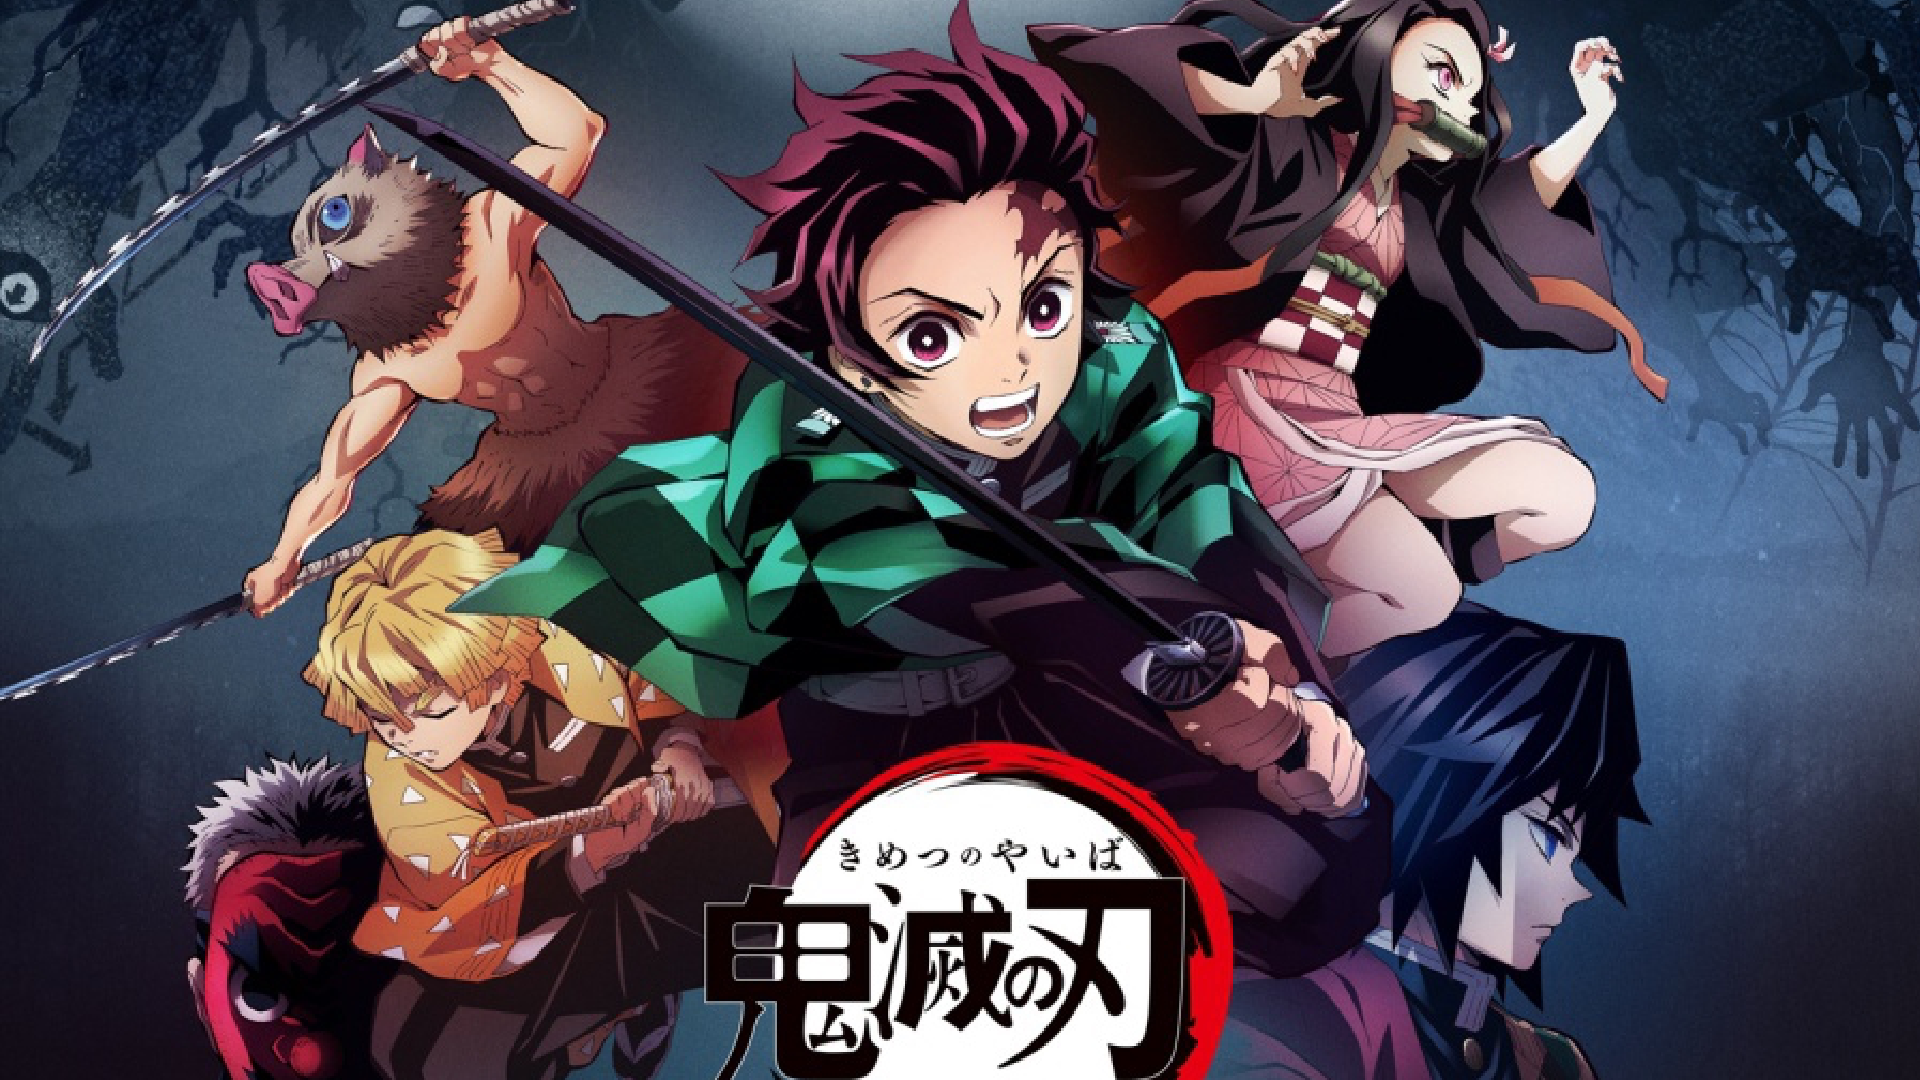 What to Watch If You Loved Demon Slayer